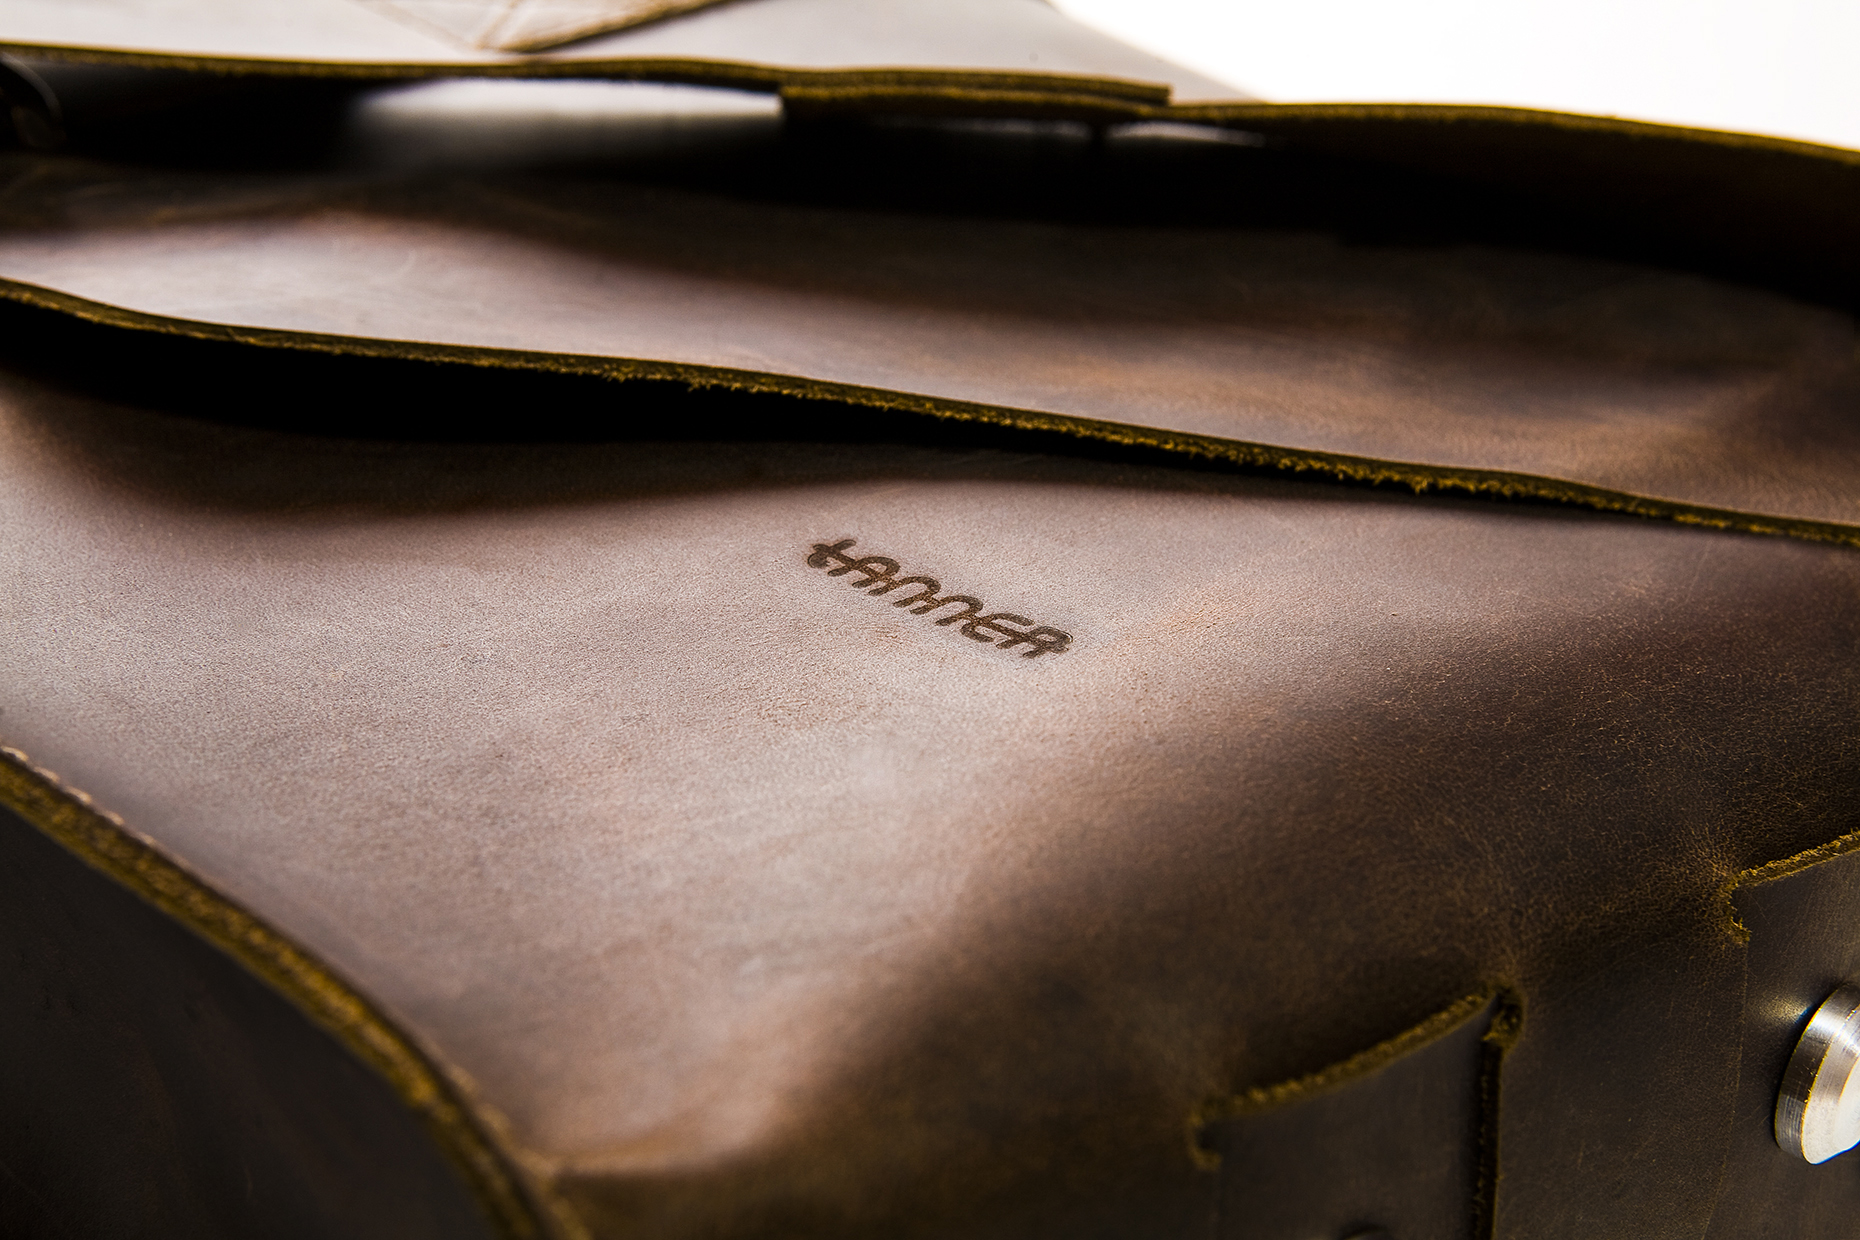 Tanner Goods Leather Messenger Bag